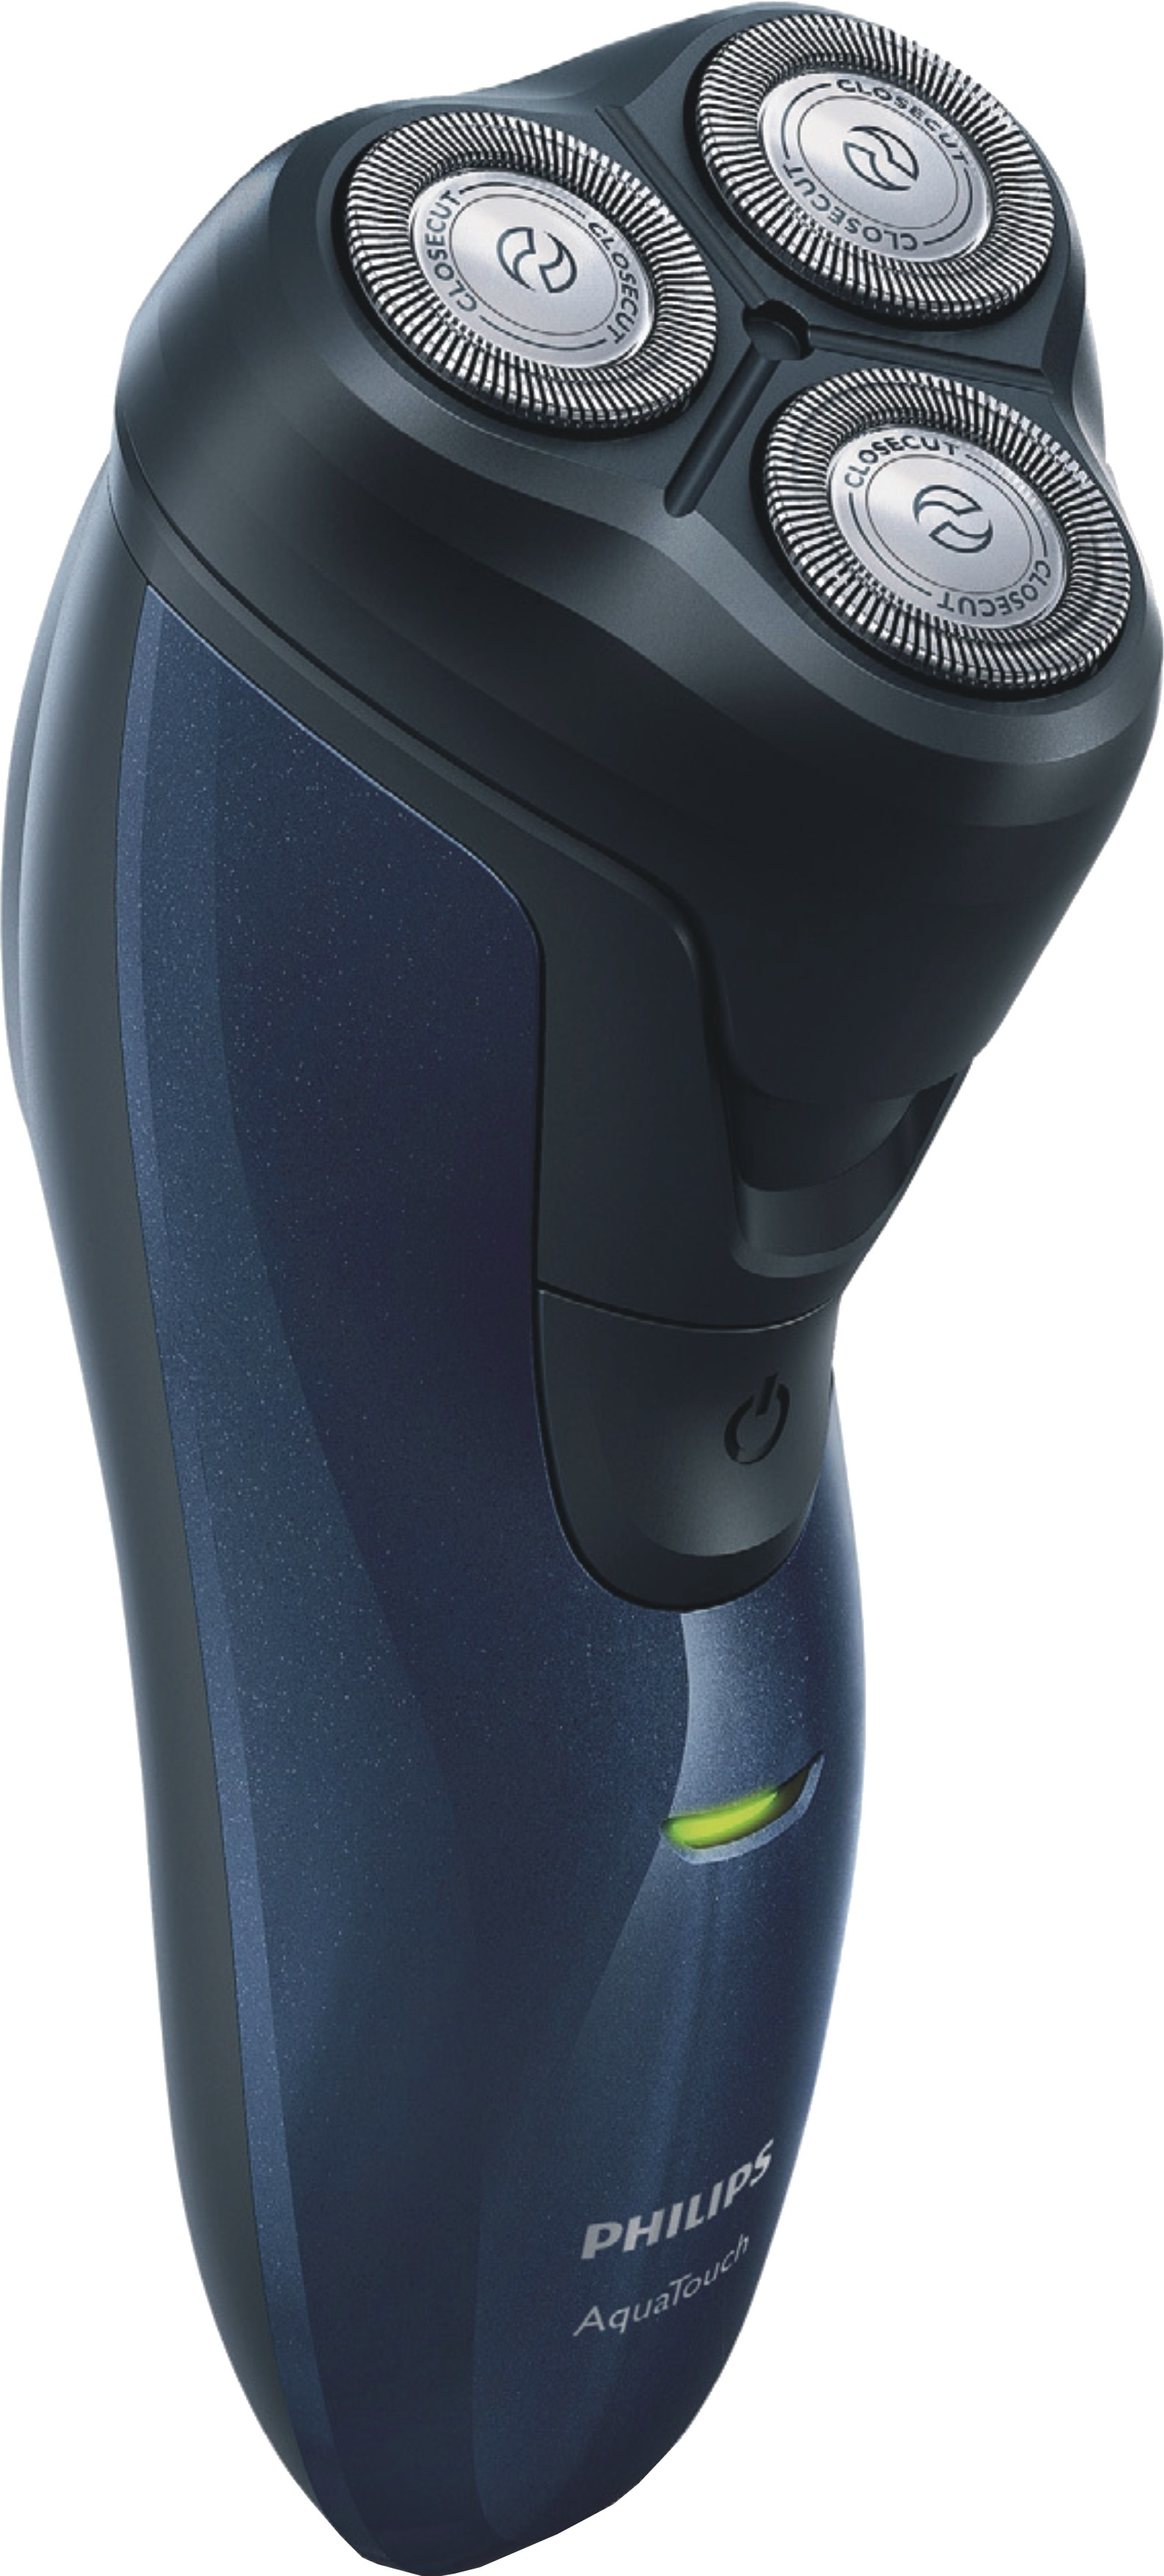 Flipkart - From Philips Just Rs.1,599